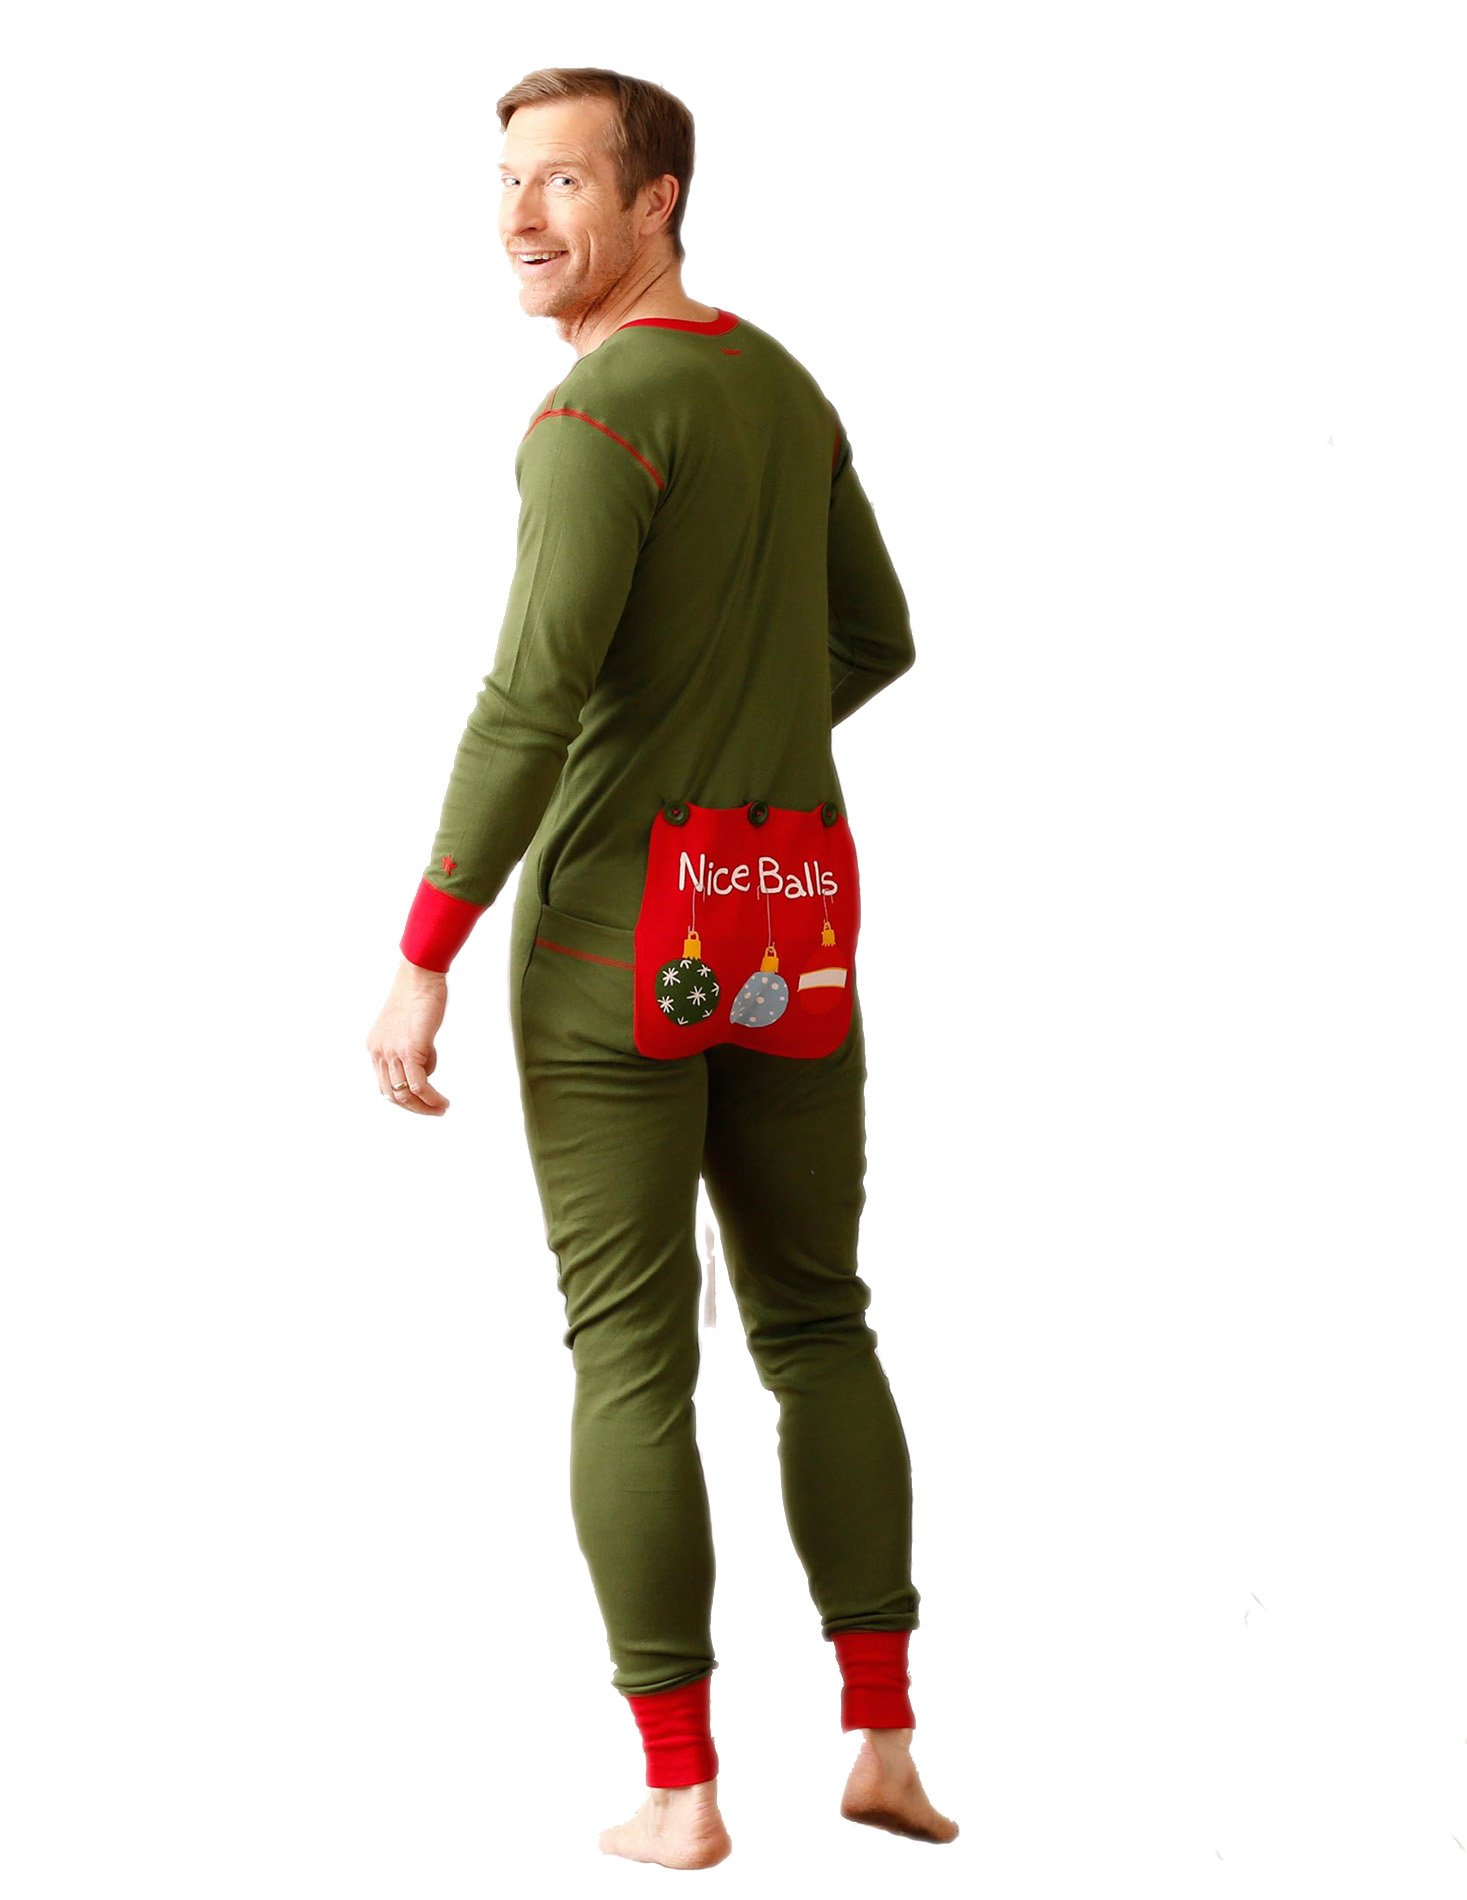 Shop Adult Christmas Pajamas from CafePress. Browse a large selection of unique designs on Men's & Women's Pajama Sets, Footed Pajamas & Women's Nightgowns. Free Returns % Satisfaction Guarantee Fast Shipping.